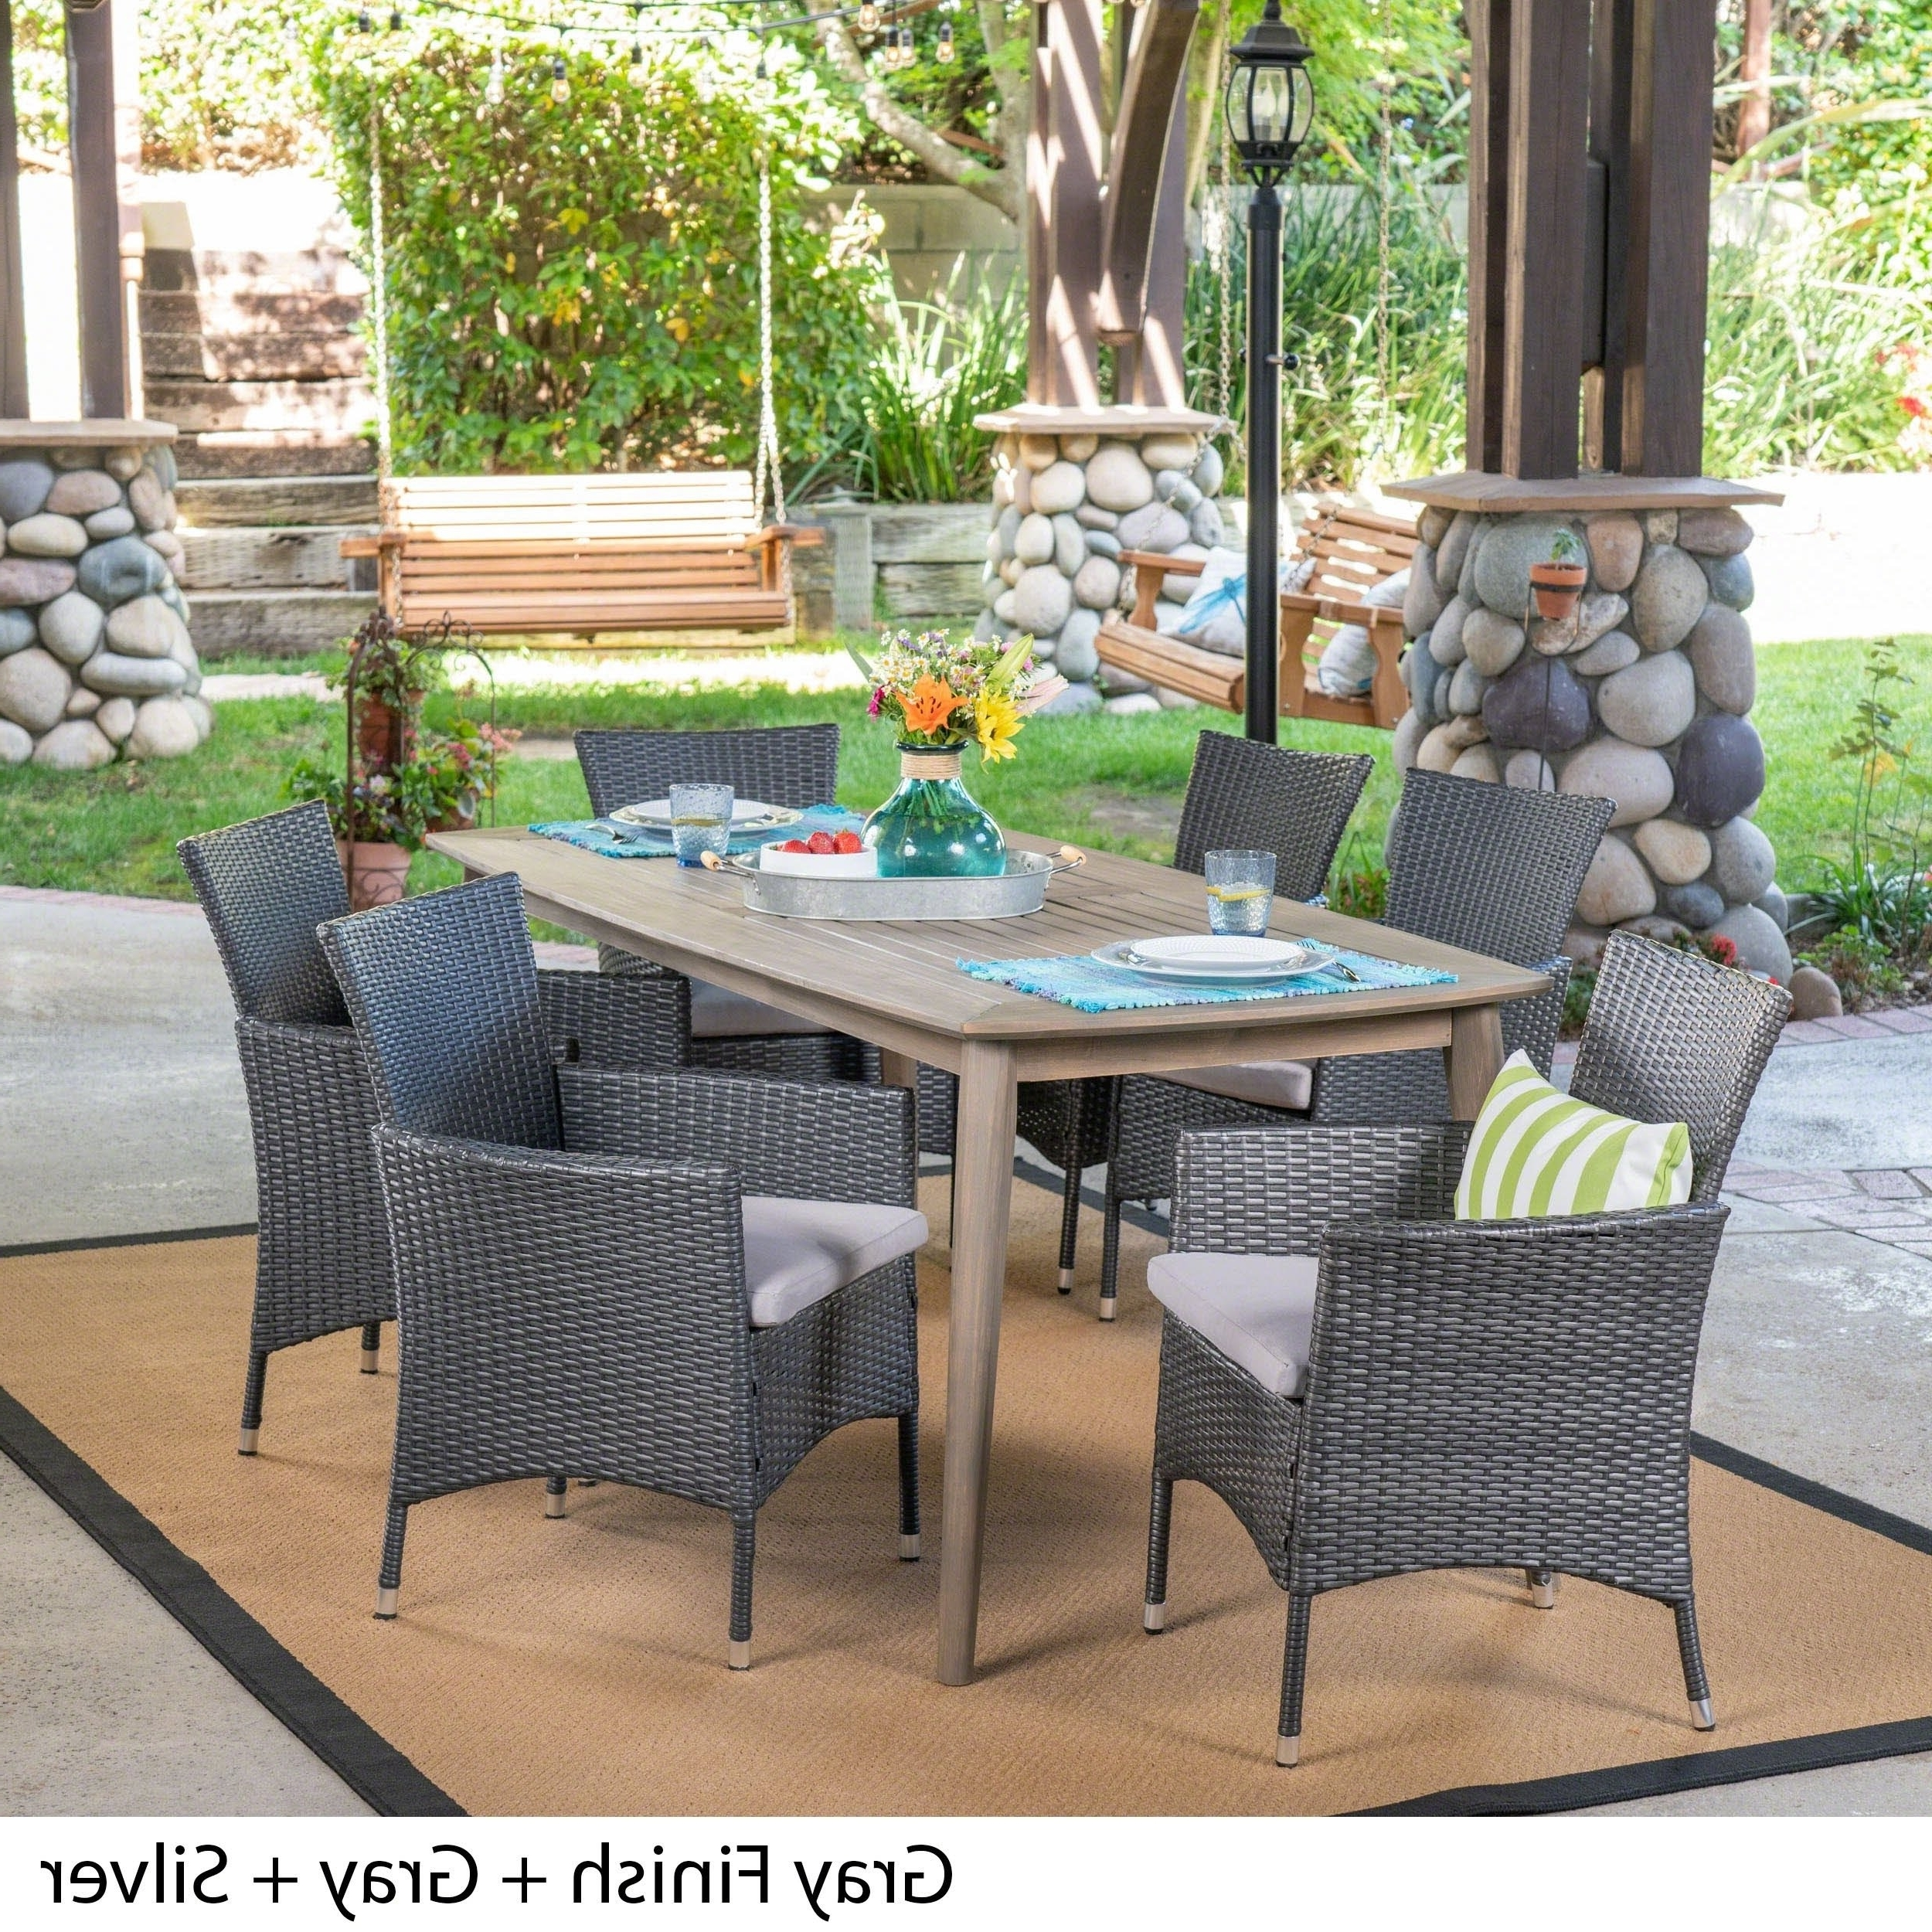 2017 Jaxon Grey 6 Piece Rectangle Extension Dining Sets With Bench & Uph Chairs Within Shop Jaxon Outdoor 7 Piece Multibrown Pe Wicker Dining Set With (Gallery 12 of 25)